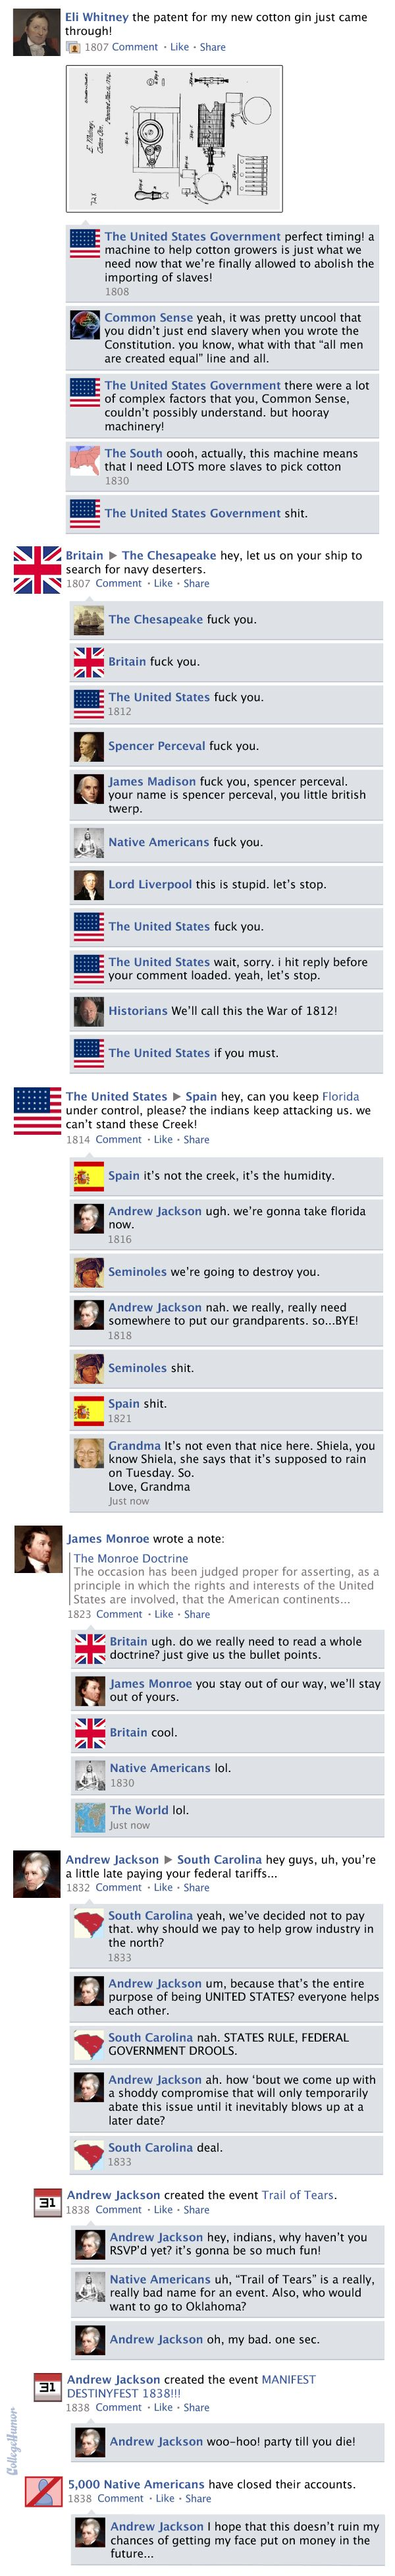 Facebook News Feed History of the World > Antebellum